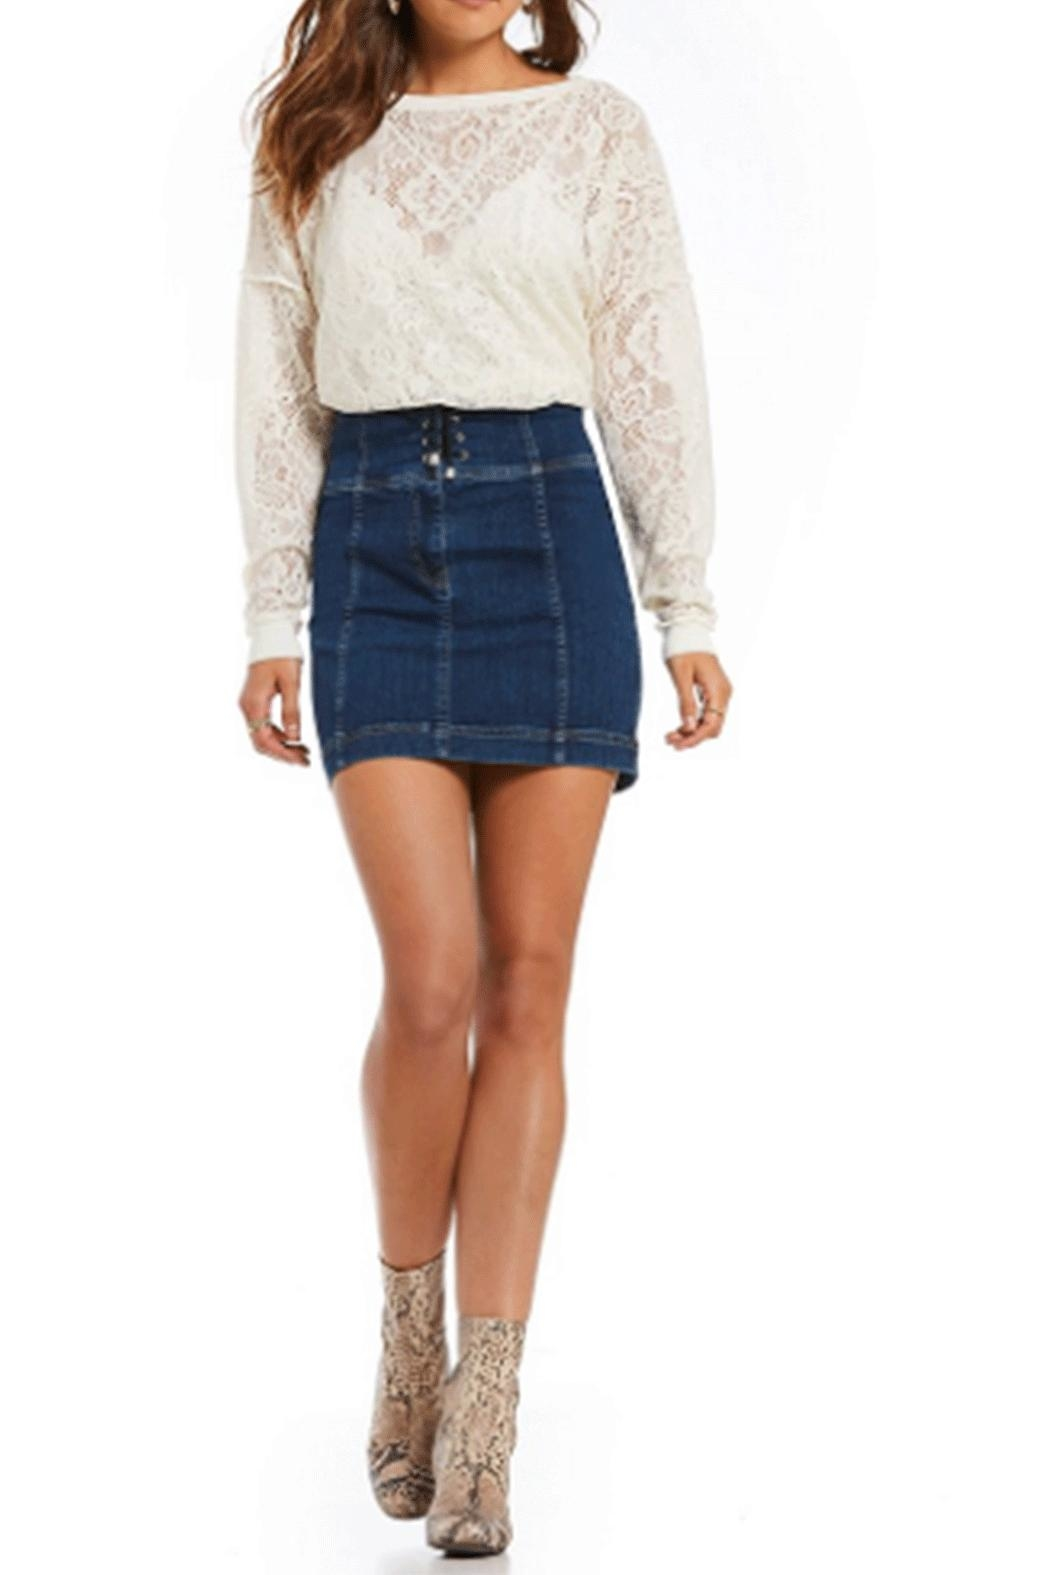 Free People Modern-Femme Borset Mini-Skirt - Front Cropped Image